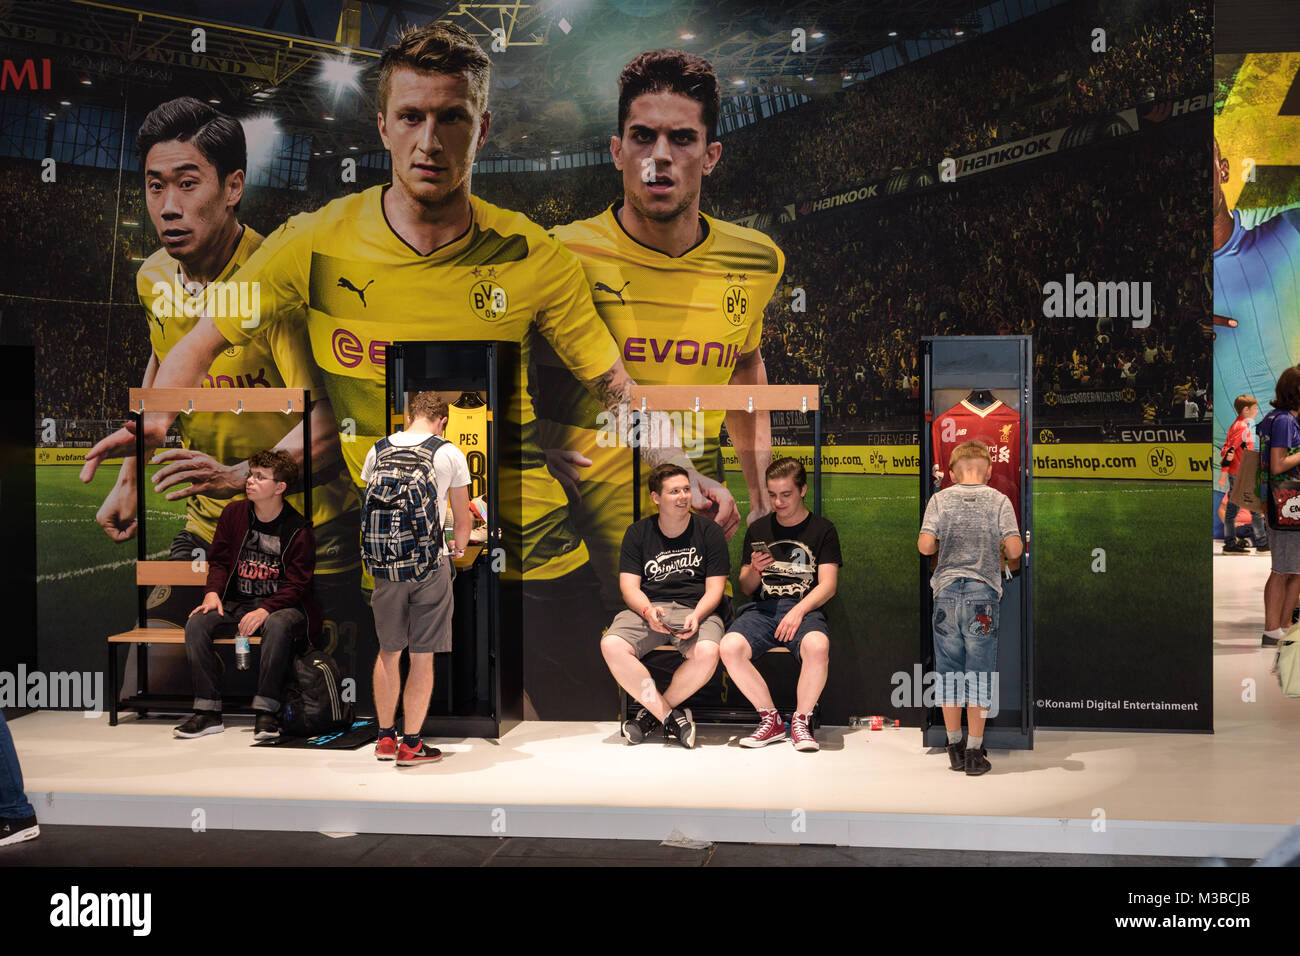 Cologne, Germany - August 24, 2017: Boys stand and sit in front of a BVB advertisement for Pro Evolution Soccer - Stock Image